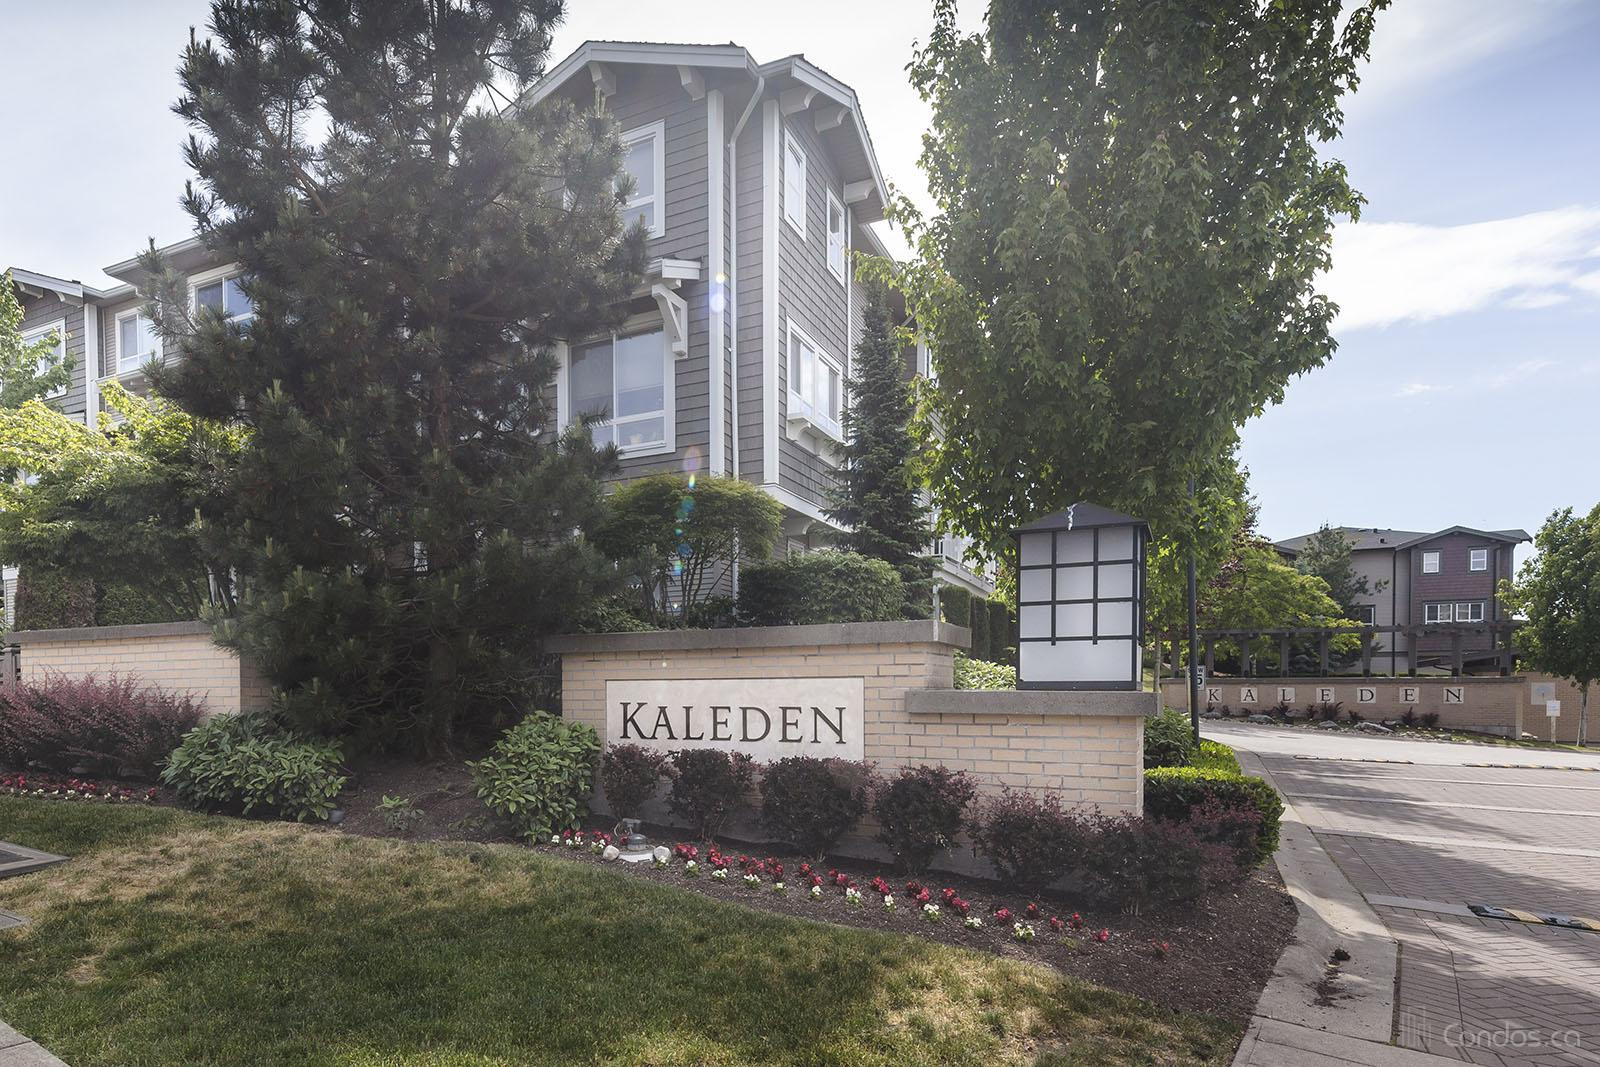 Kaleden at 2729 158 St, Surrey 0